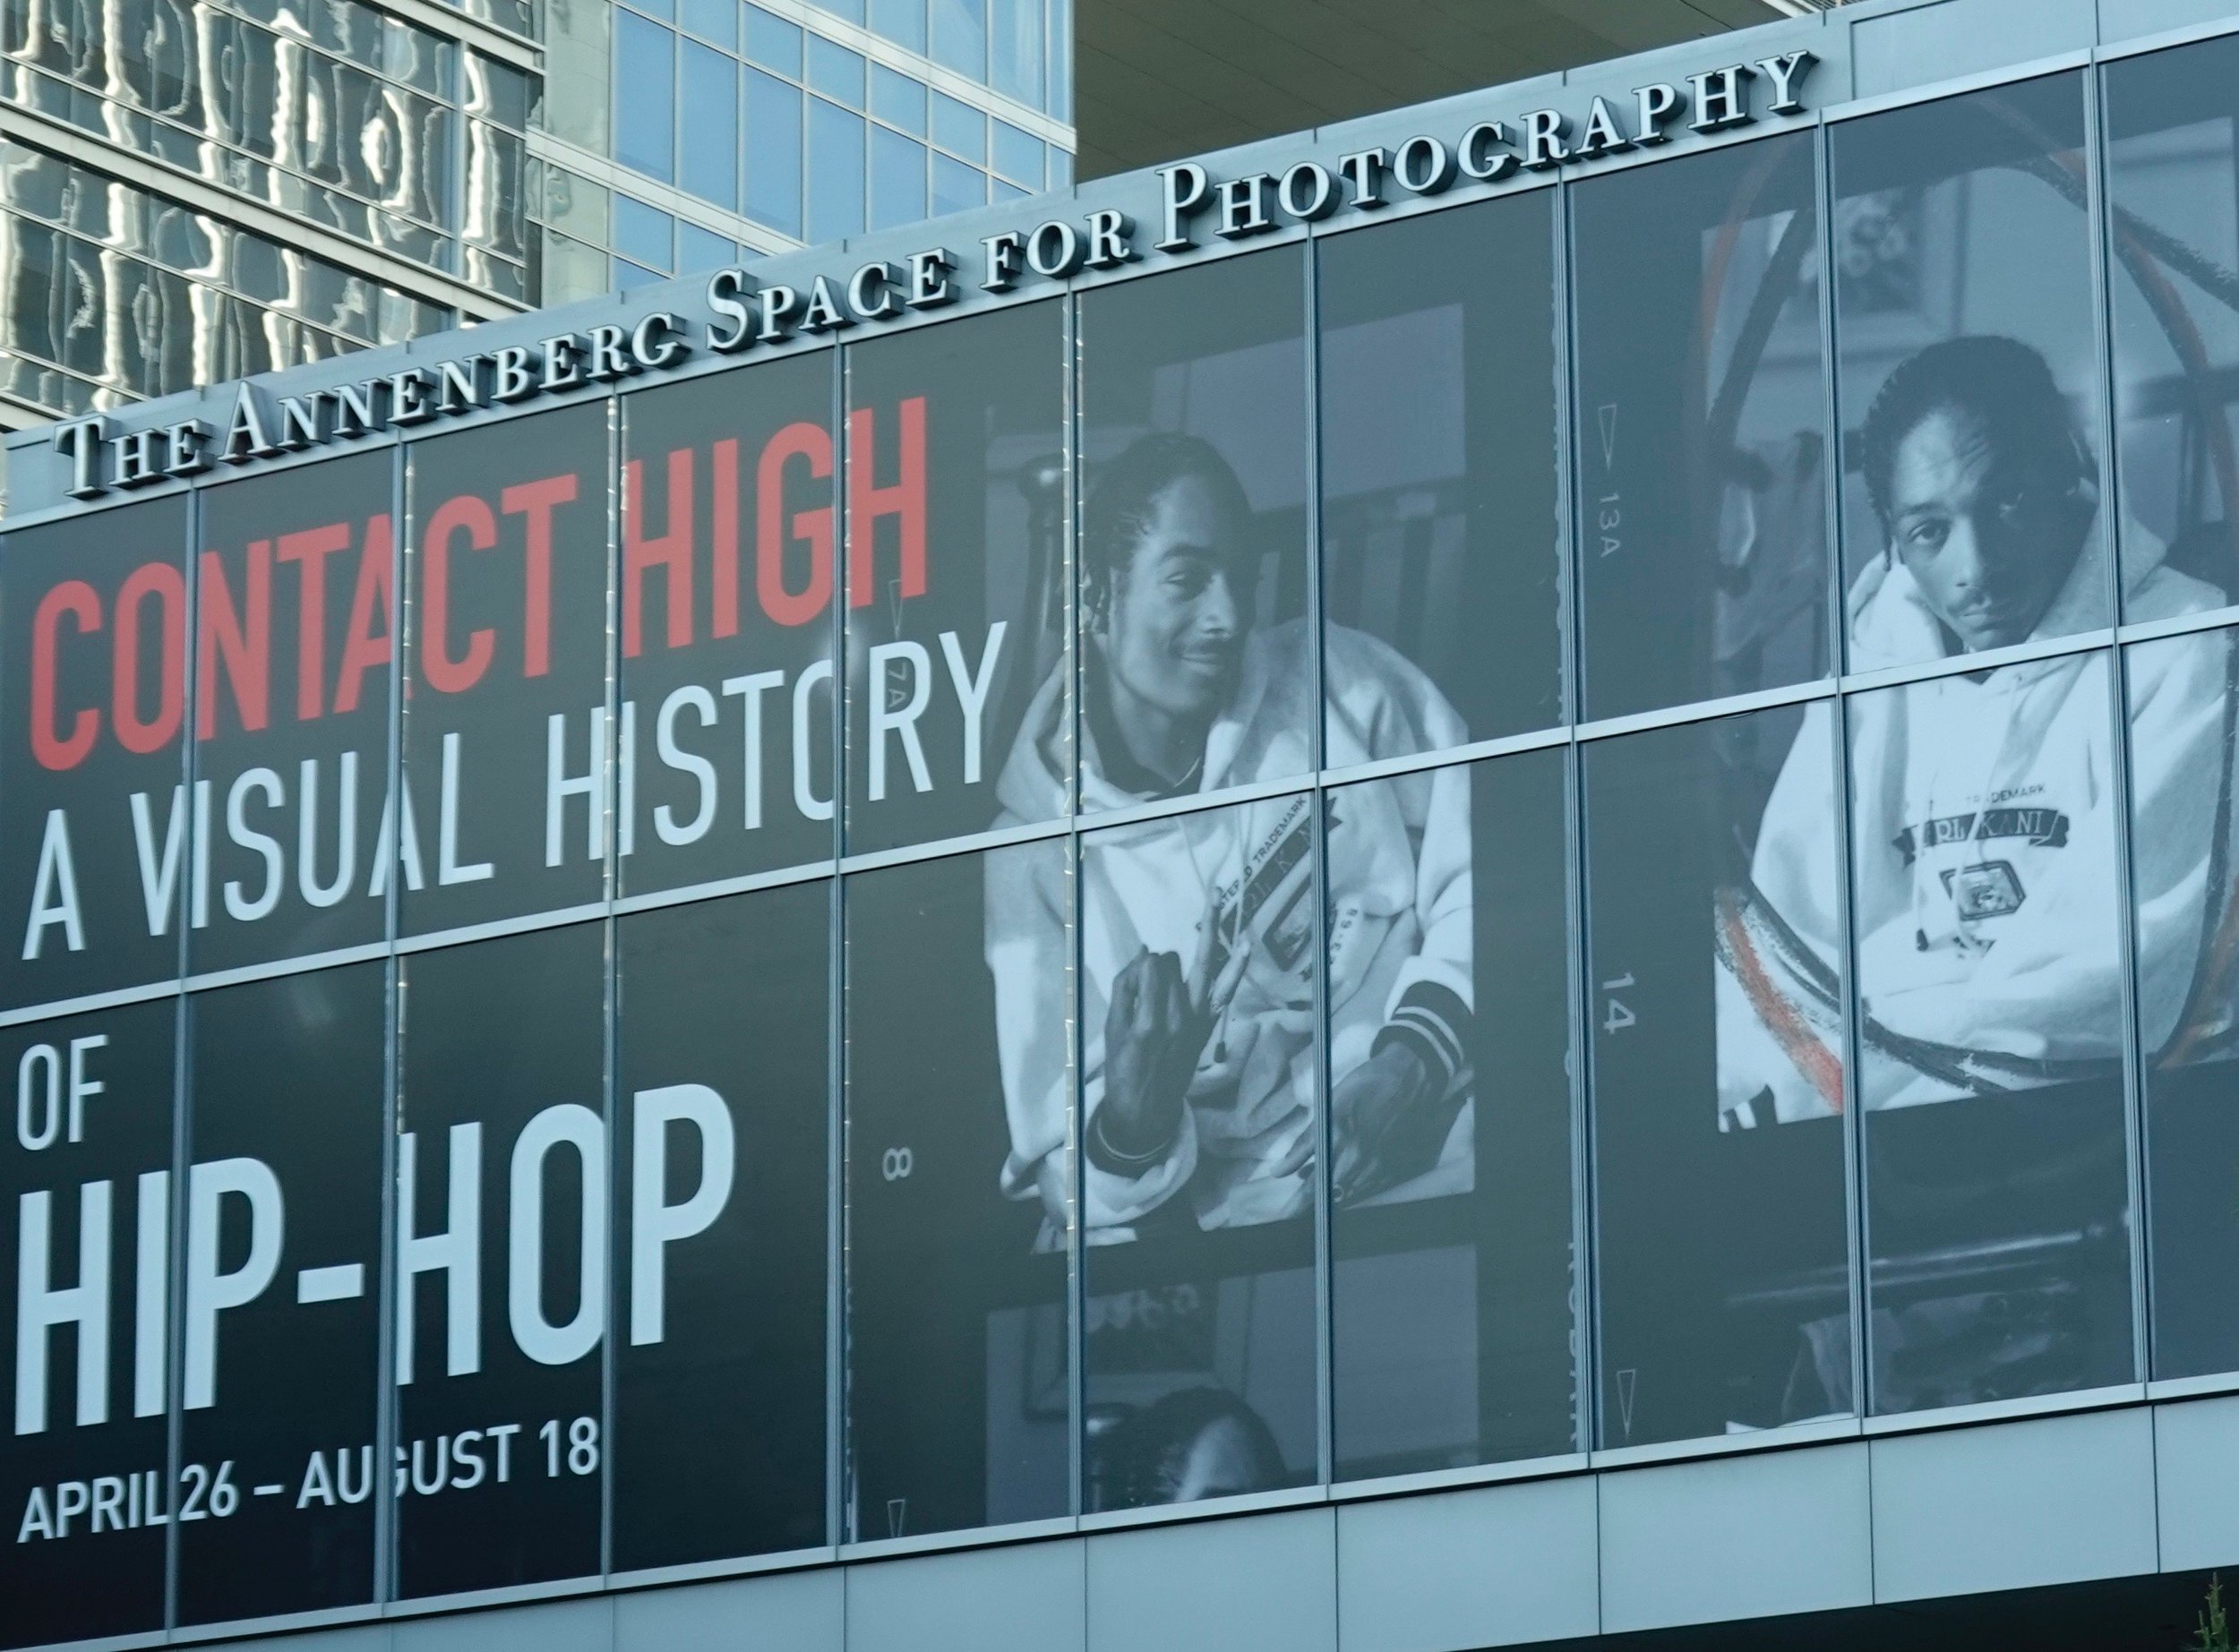 Contact High: A Visual History of Hip-Hop at Annenberg Space for Photography